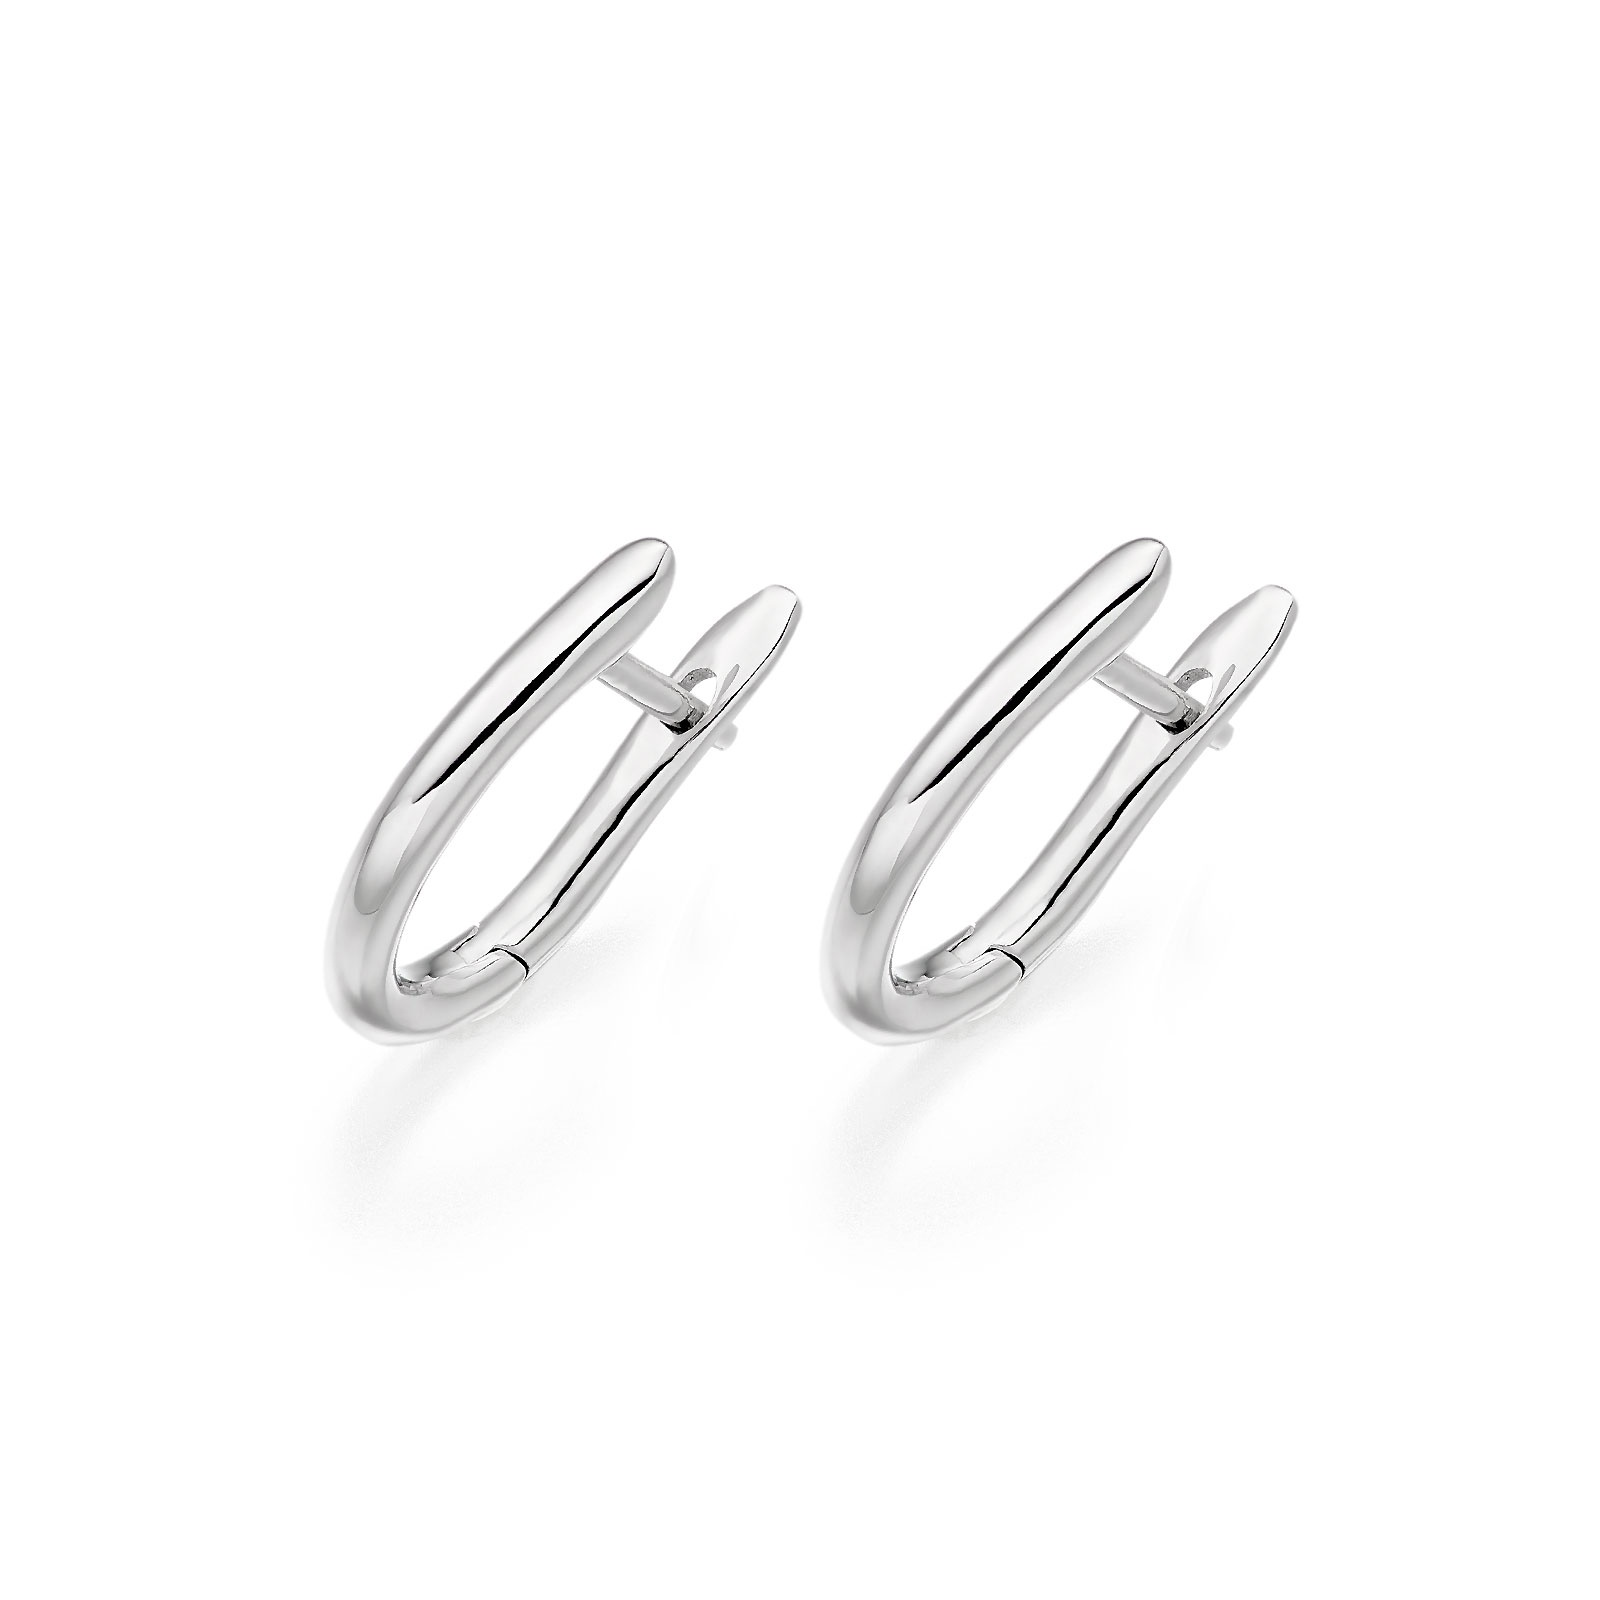 White Gold Huggie Earrings with White Freshwater Pearls-FEWDWG1247-1